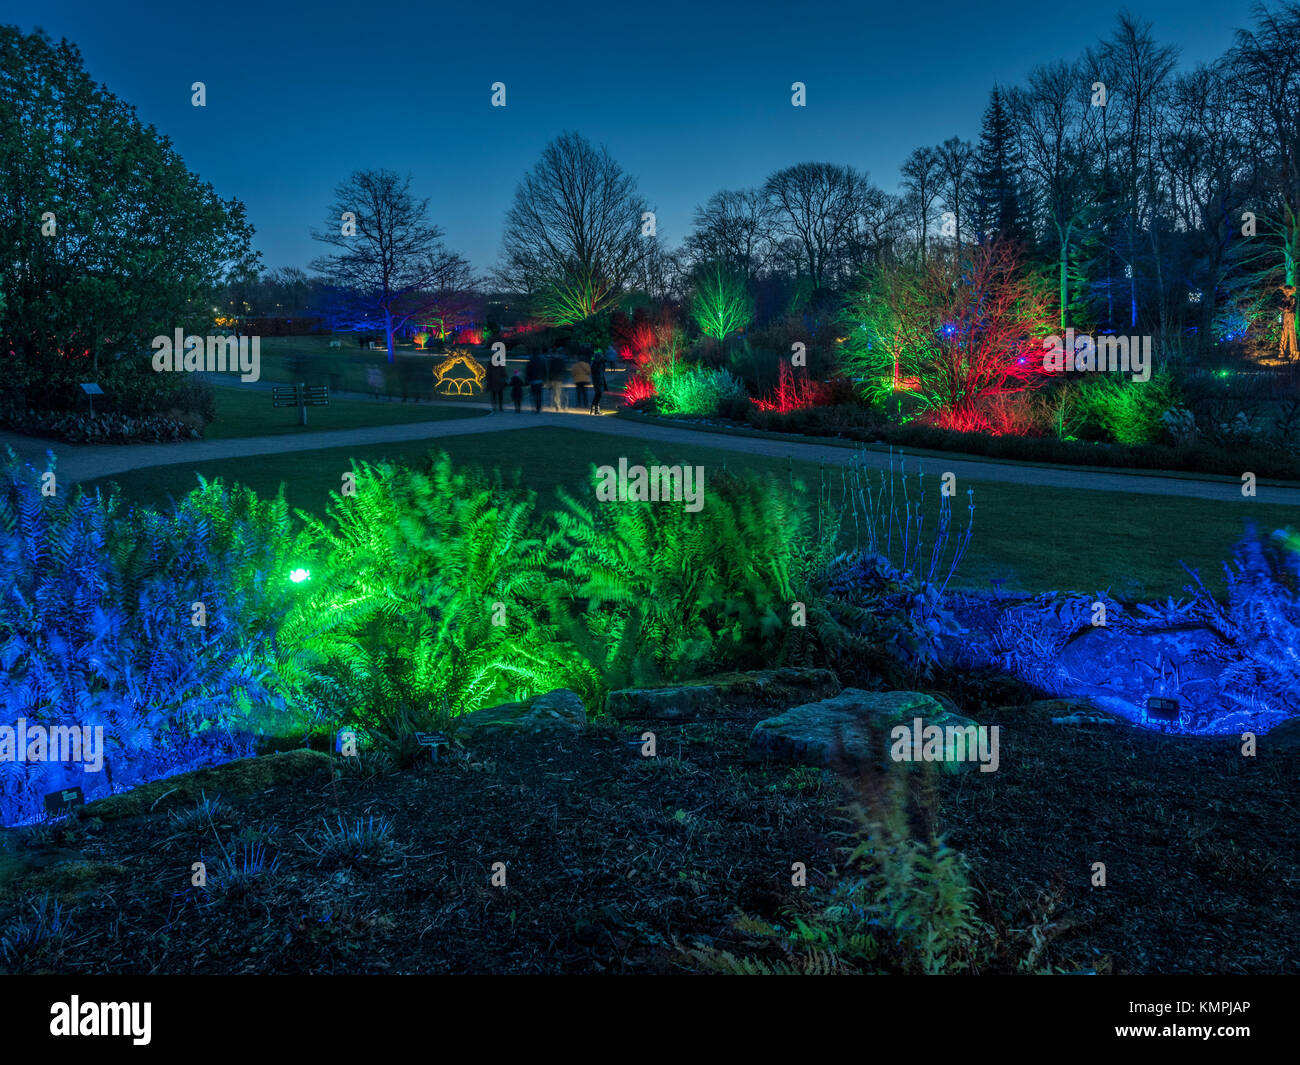 Harlow Carr the most northerly RHS garden is viewed differently this weekend as special lighting effects bring a touch of magic to the shrubs and trees.  sc 1 st  Alamy & Harrogate UK. 8th Dec 2017. Harlow Carr the most northerly RHS ...